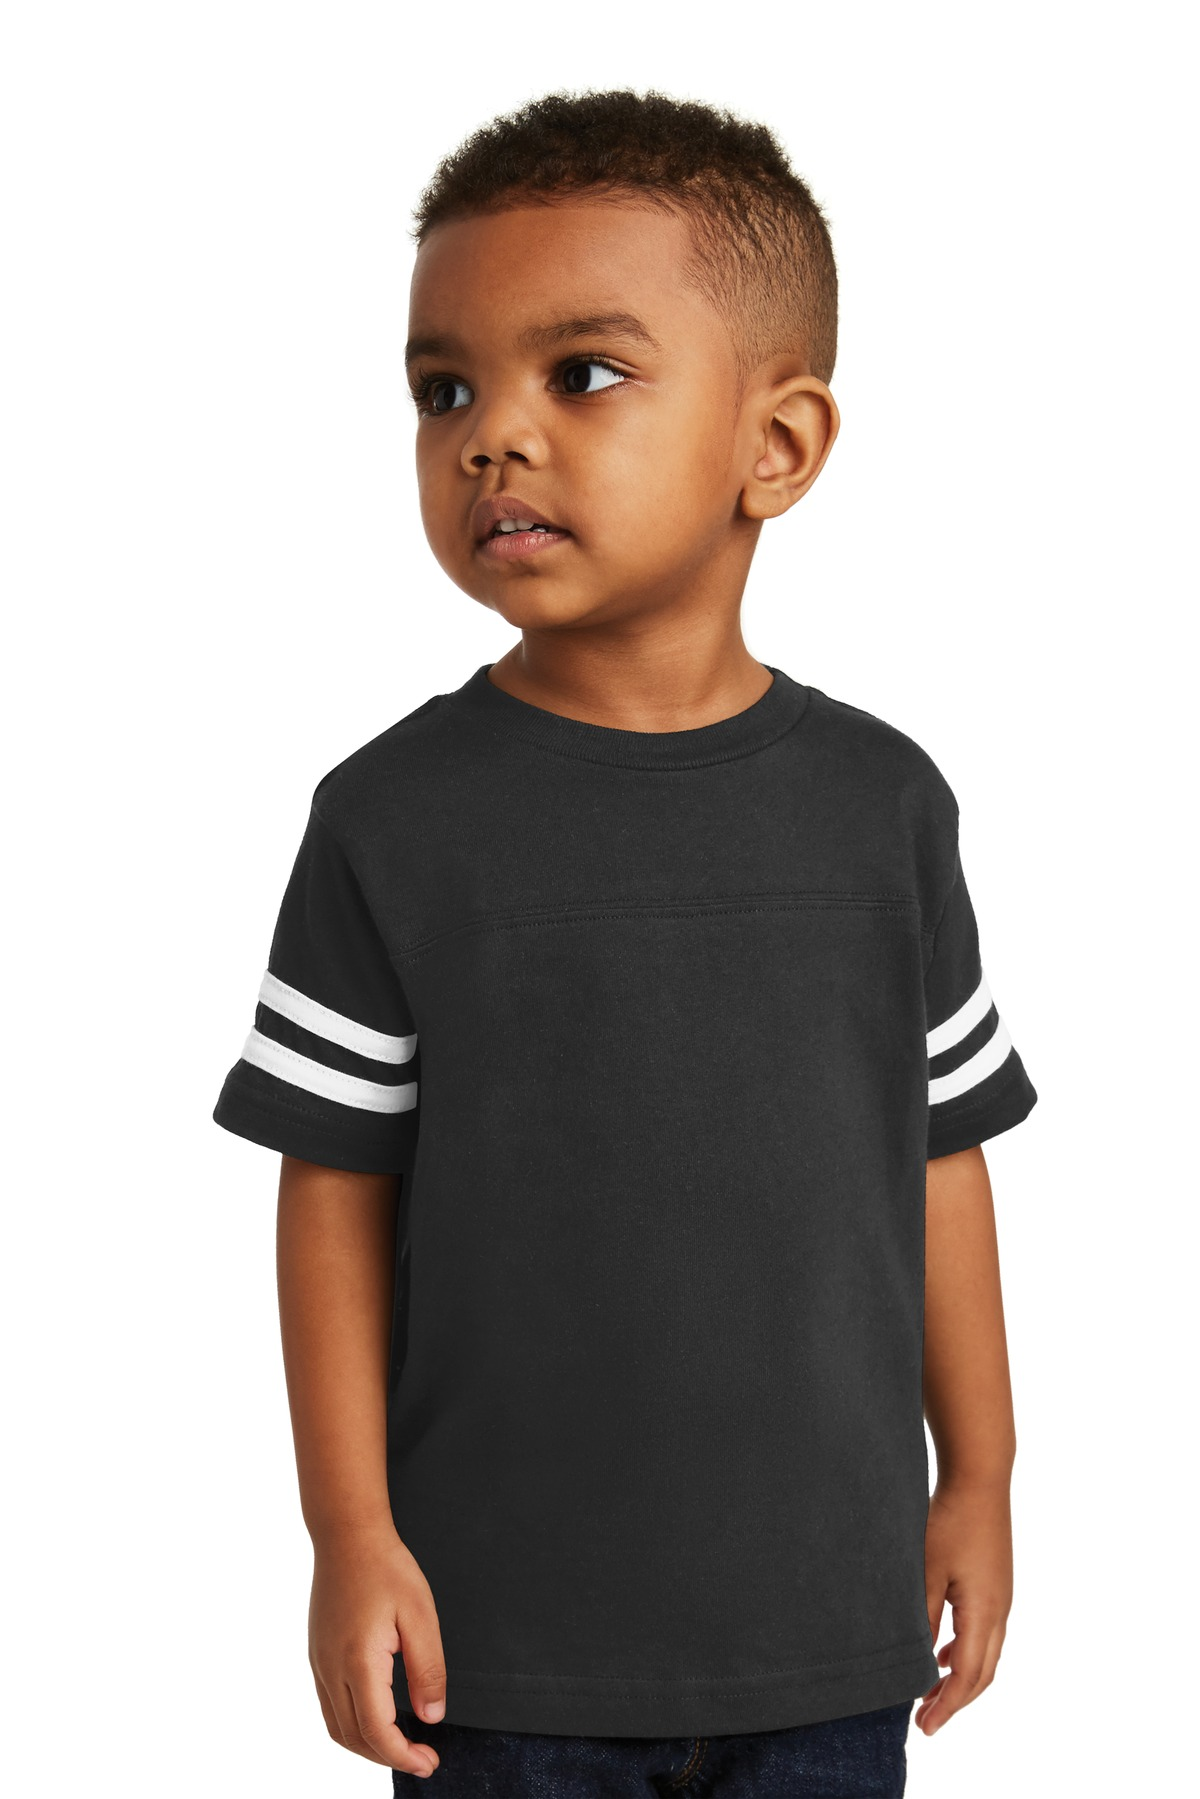 Rabbit Skins ™  Toddler Football Fine Jersey Tee. RS3037 - Black/White